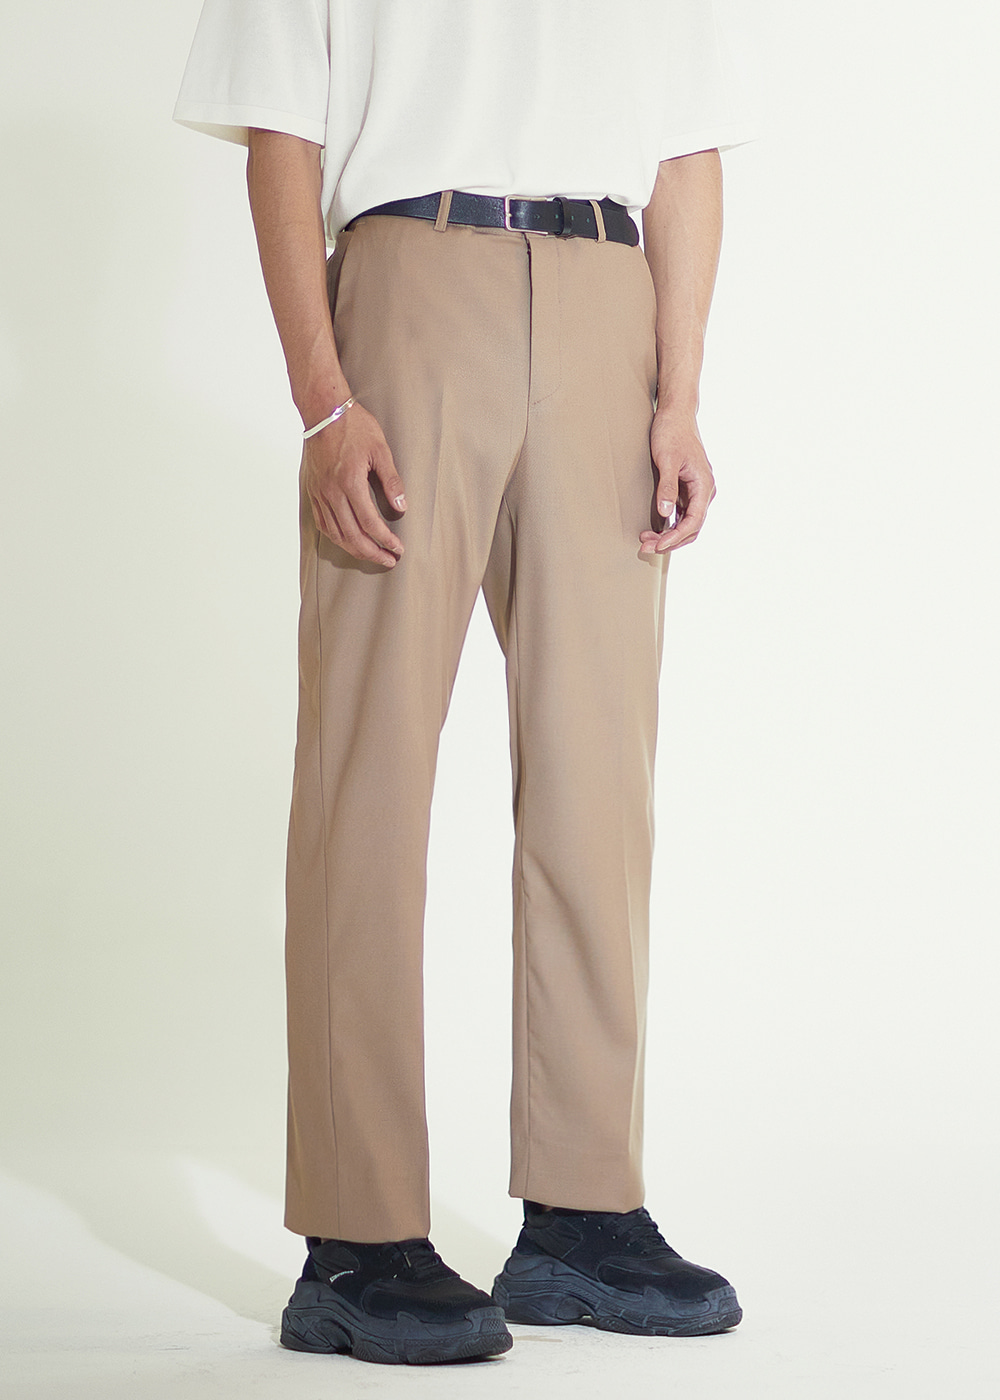 202 SEMI WIDE SLACKS MOCHA